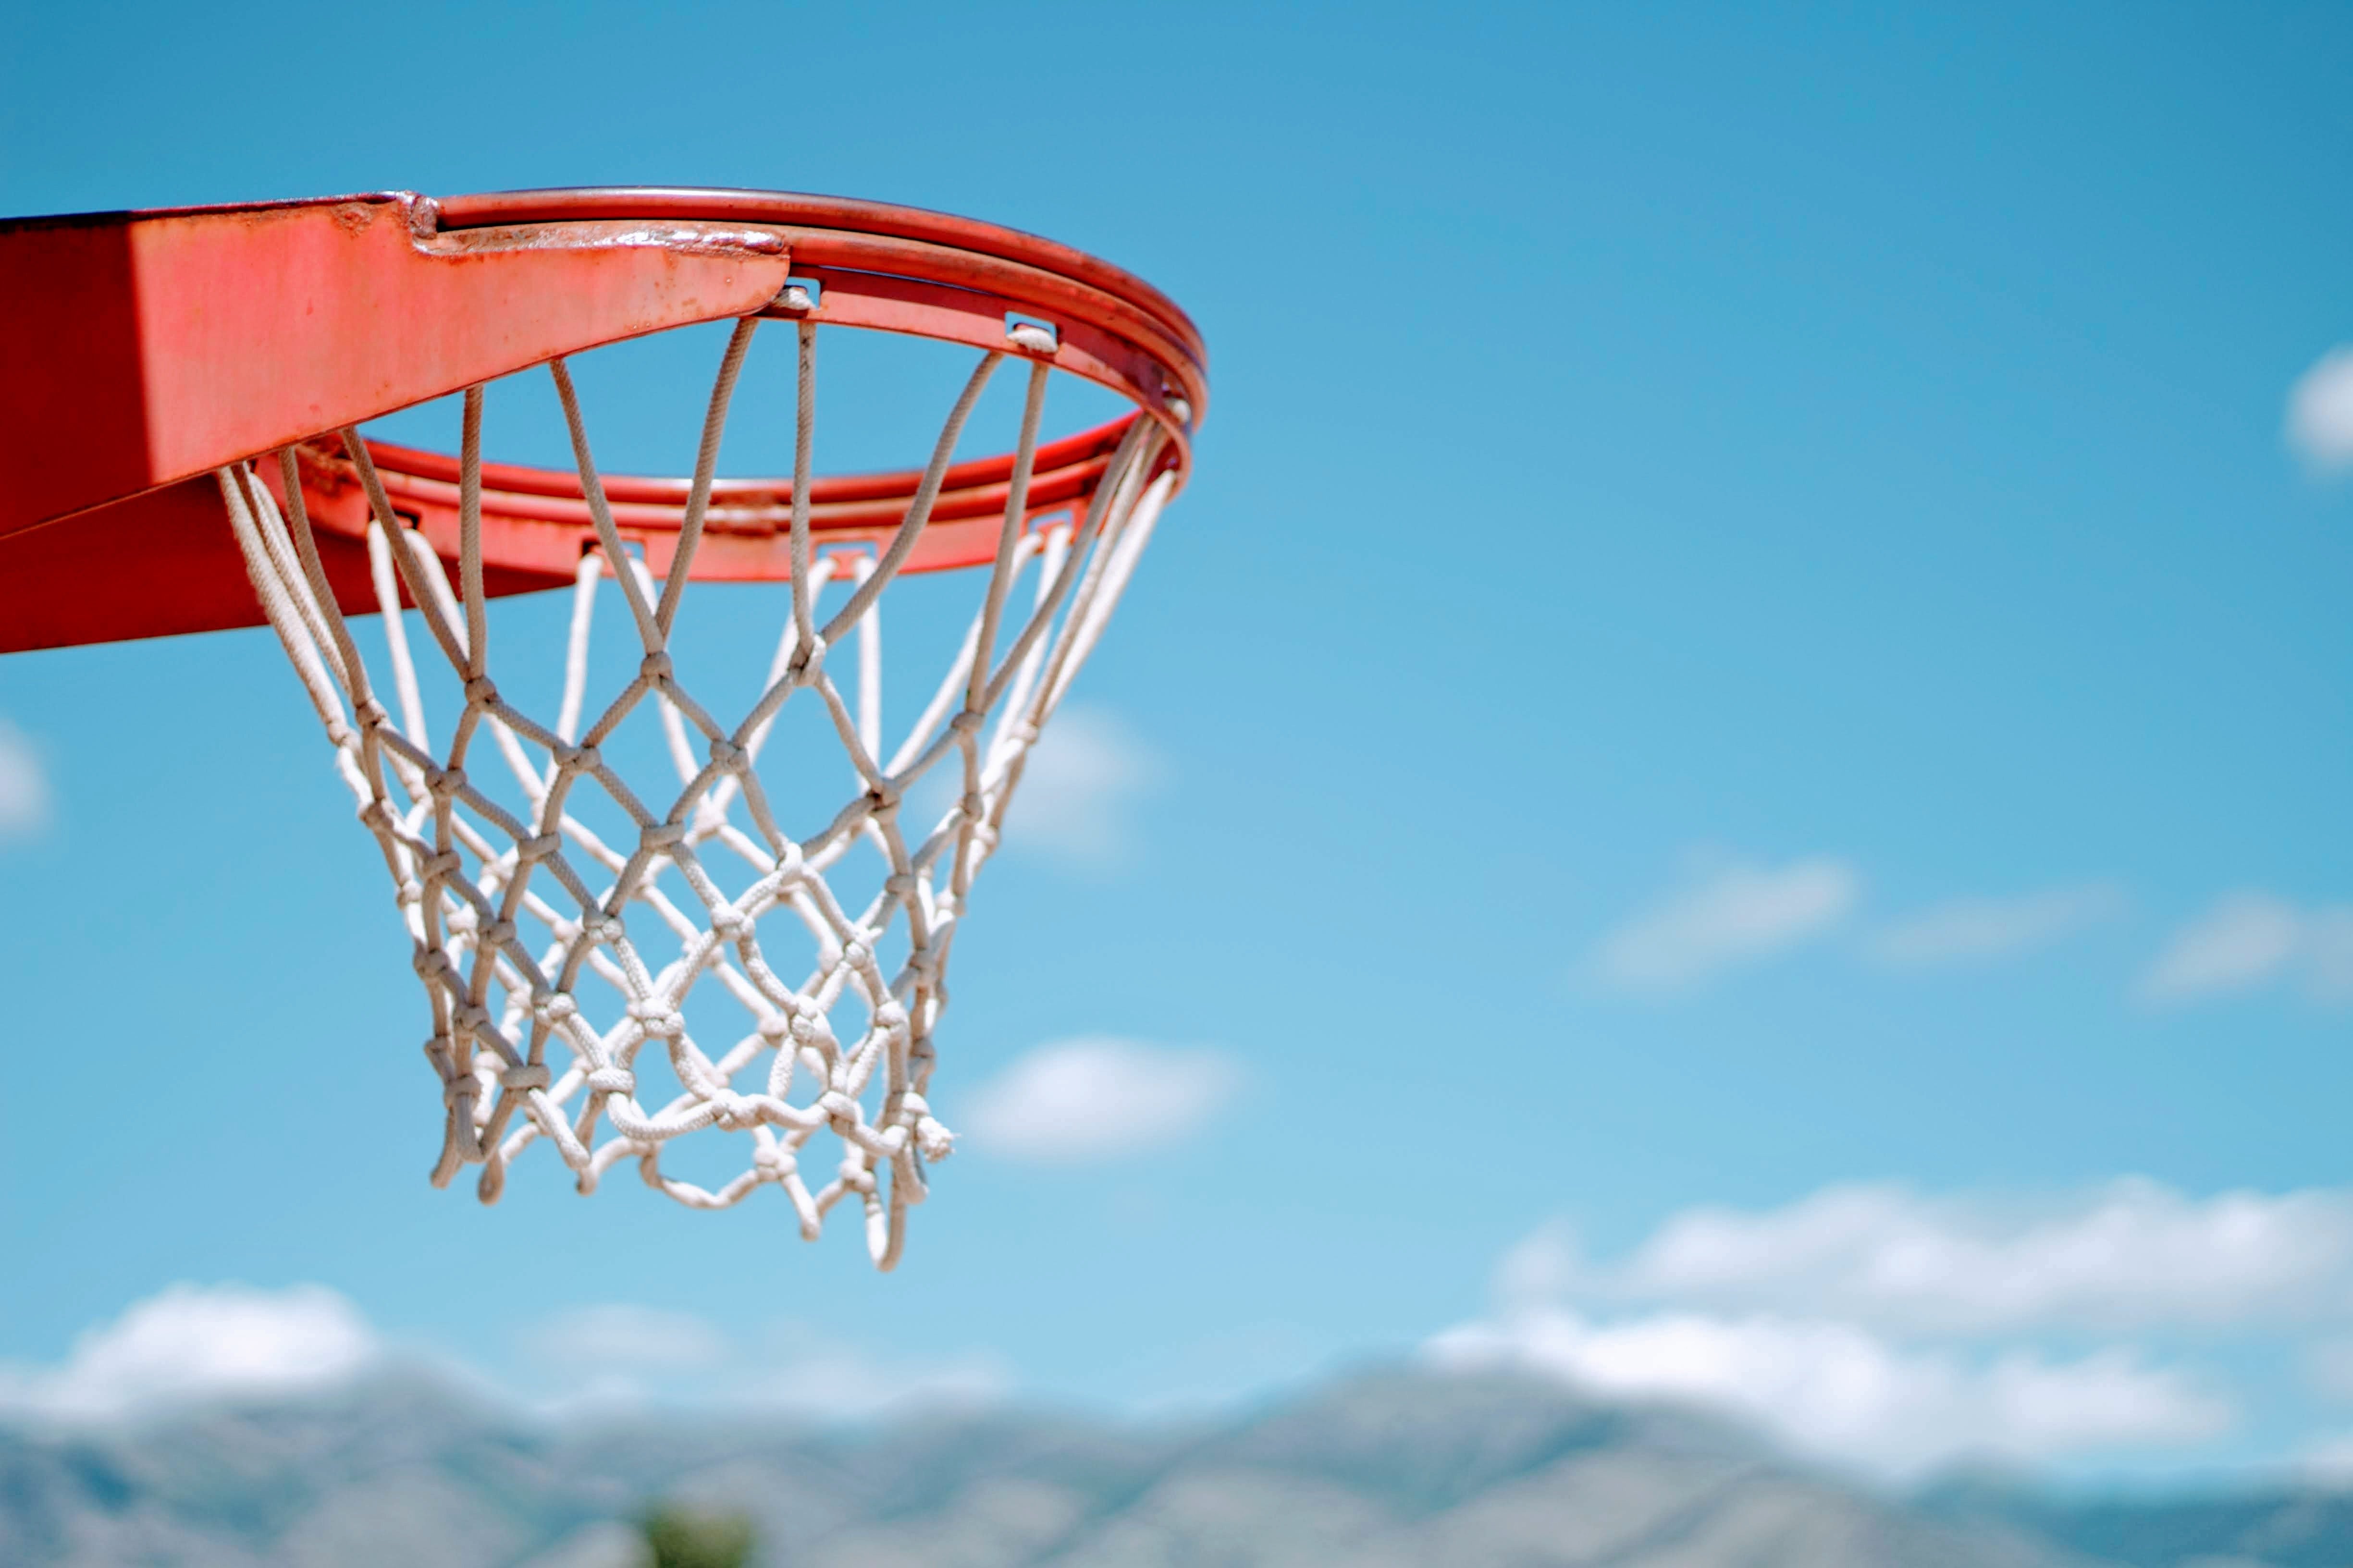 red basketball hoop with white net during daytime